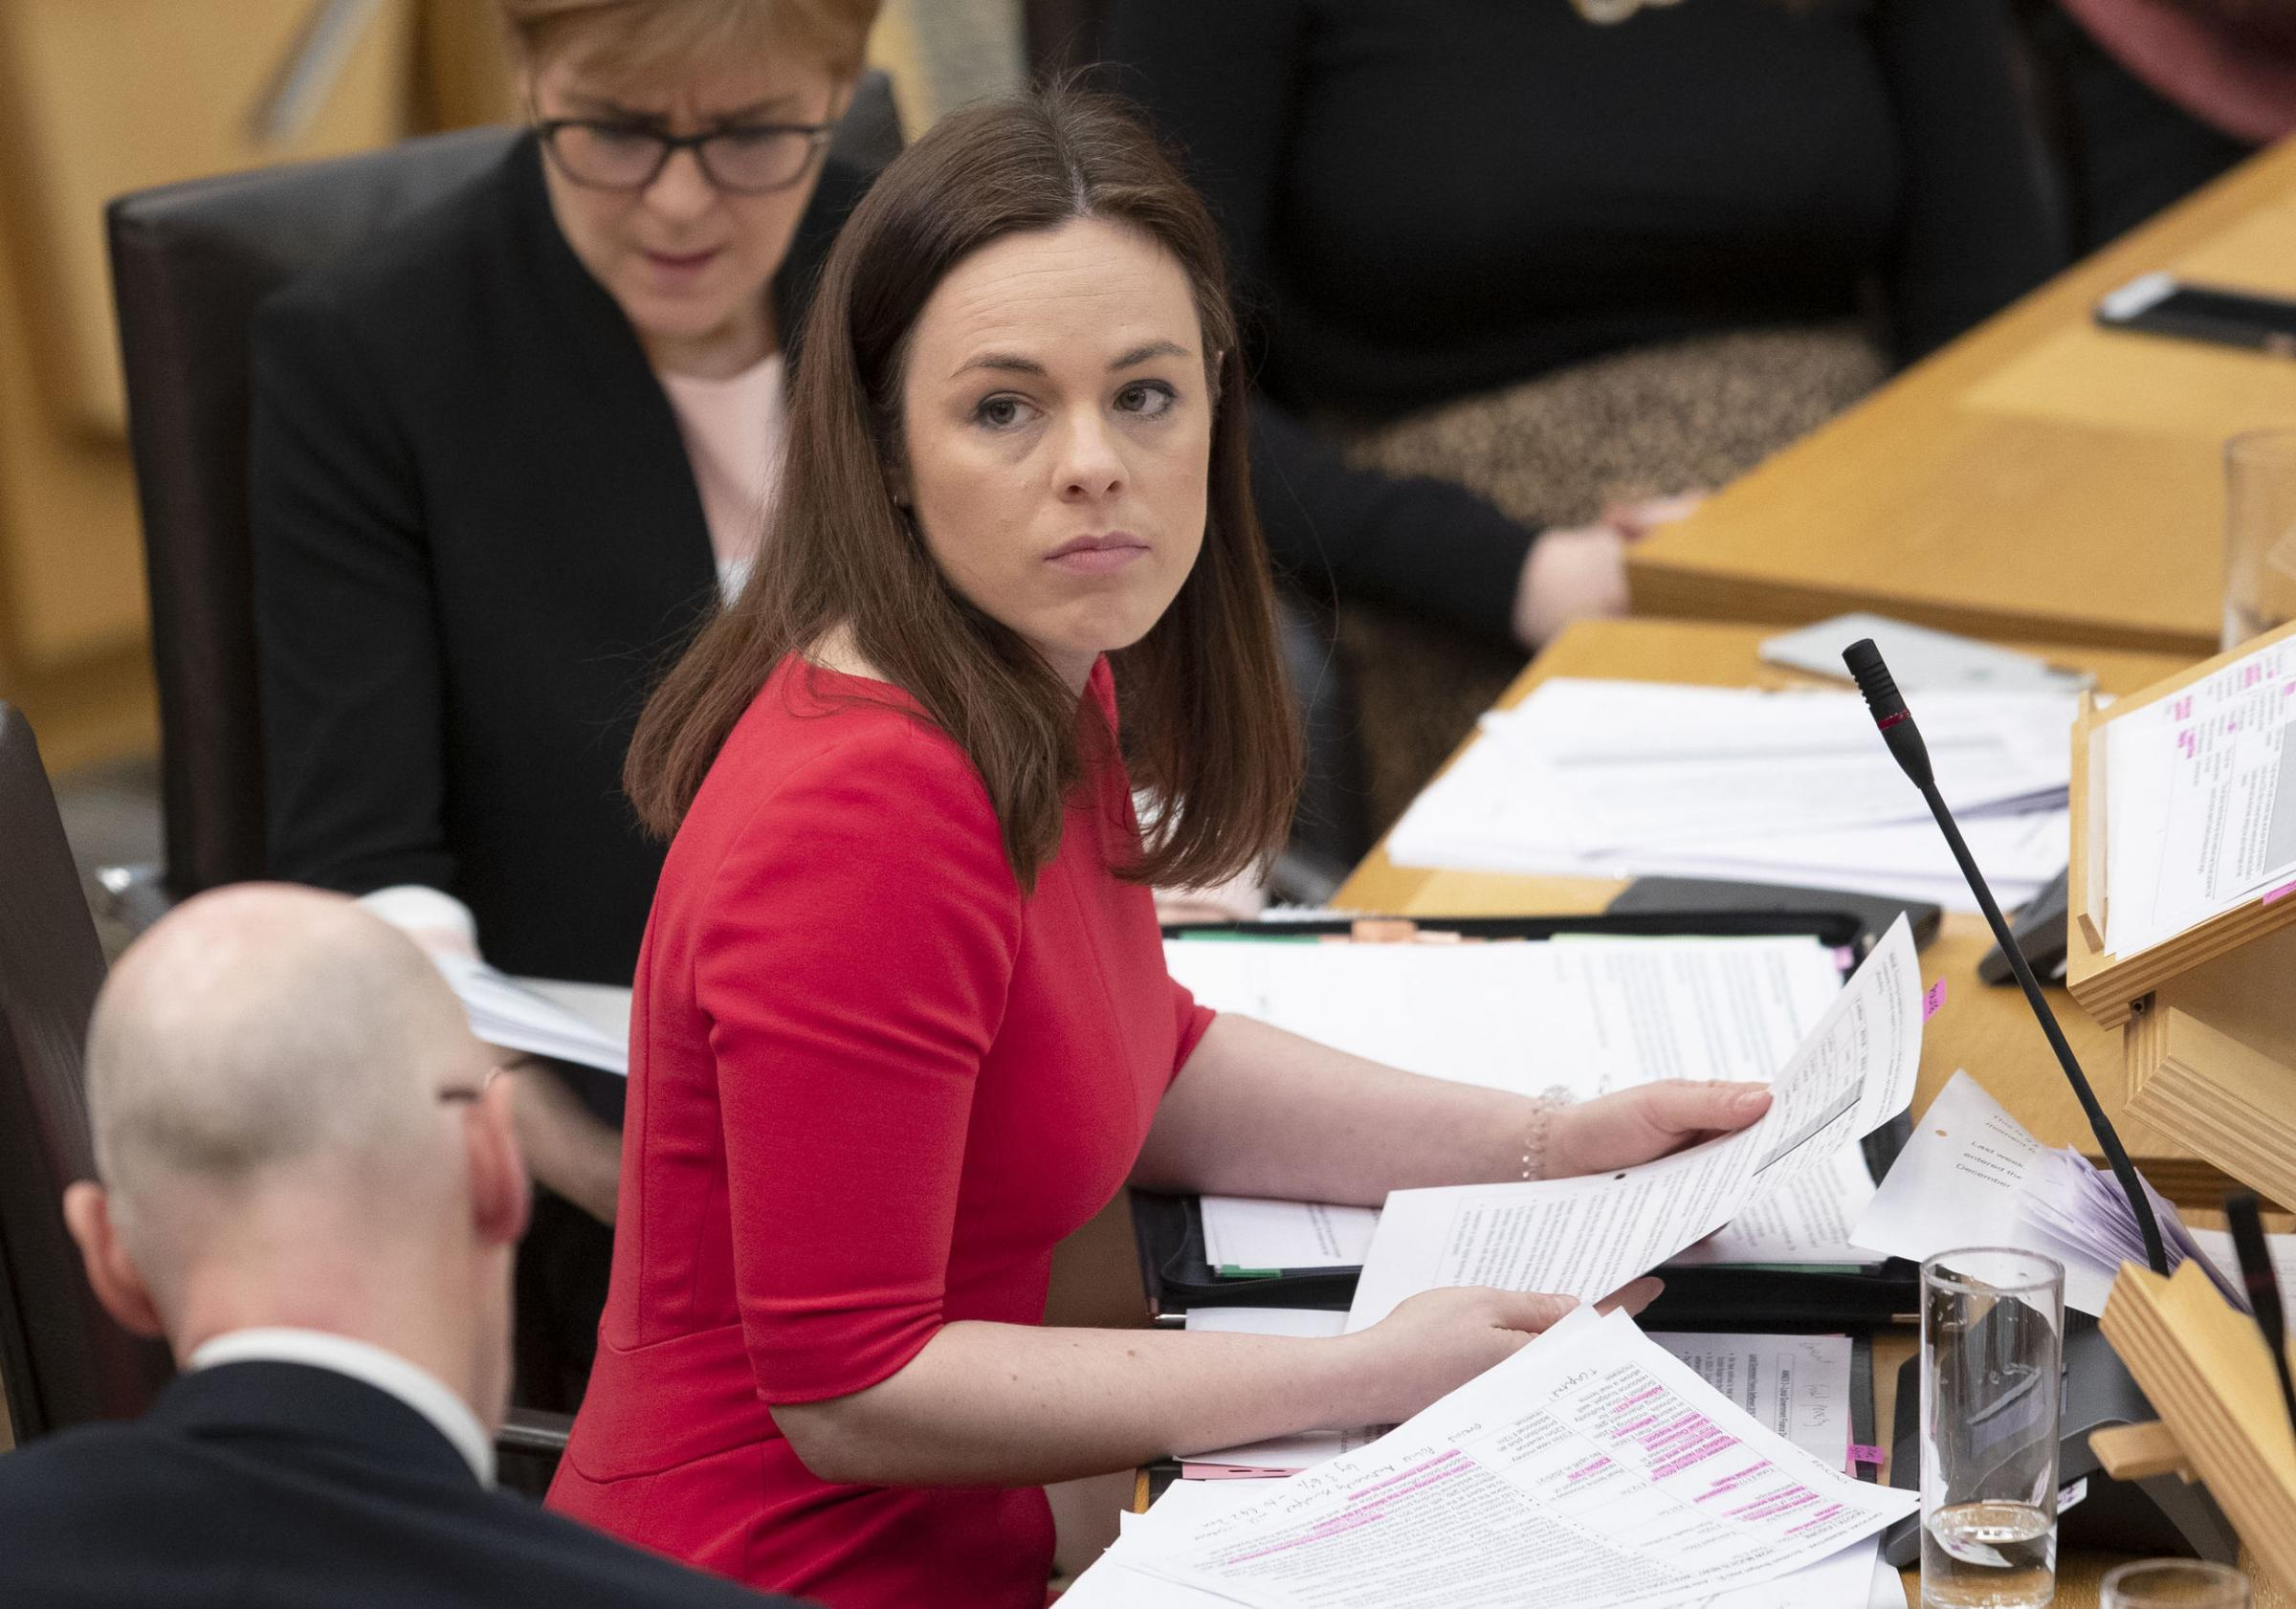 Politicians like Kate Forbes should not be attacked for their religious beliefs